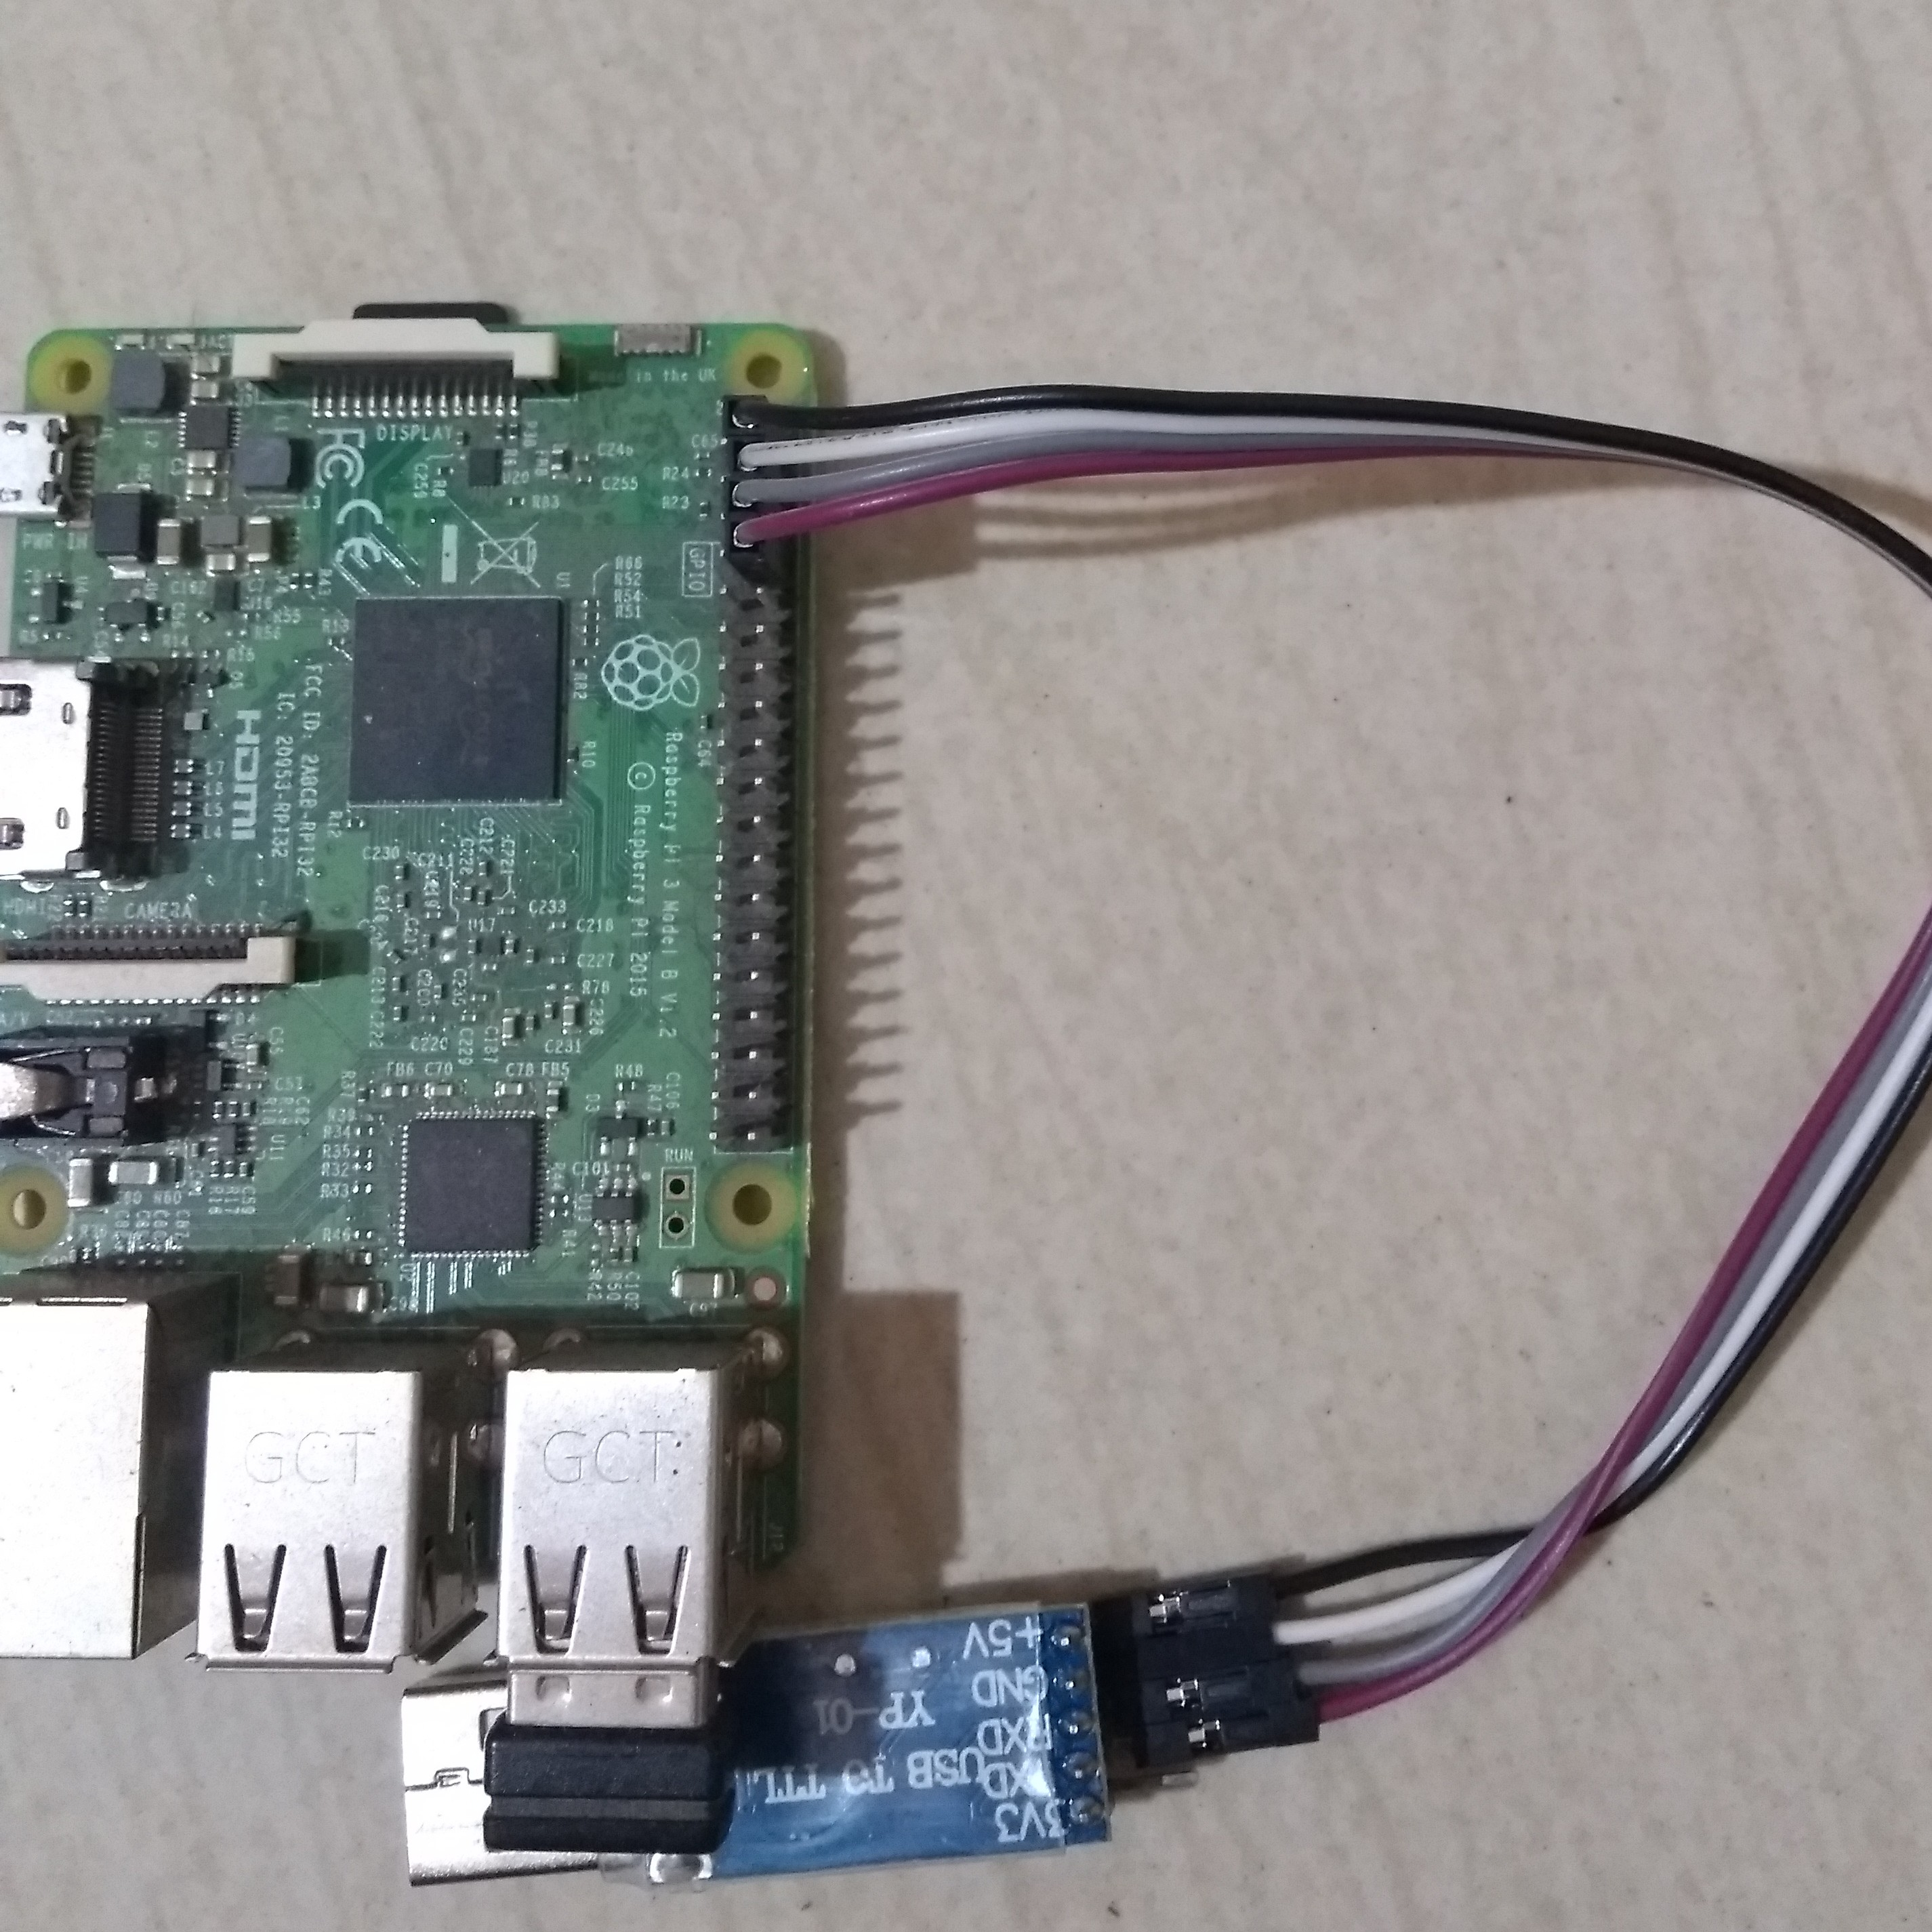 KGDB/KDB over serial with Raspberry Pi | East River Village